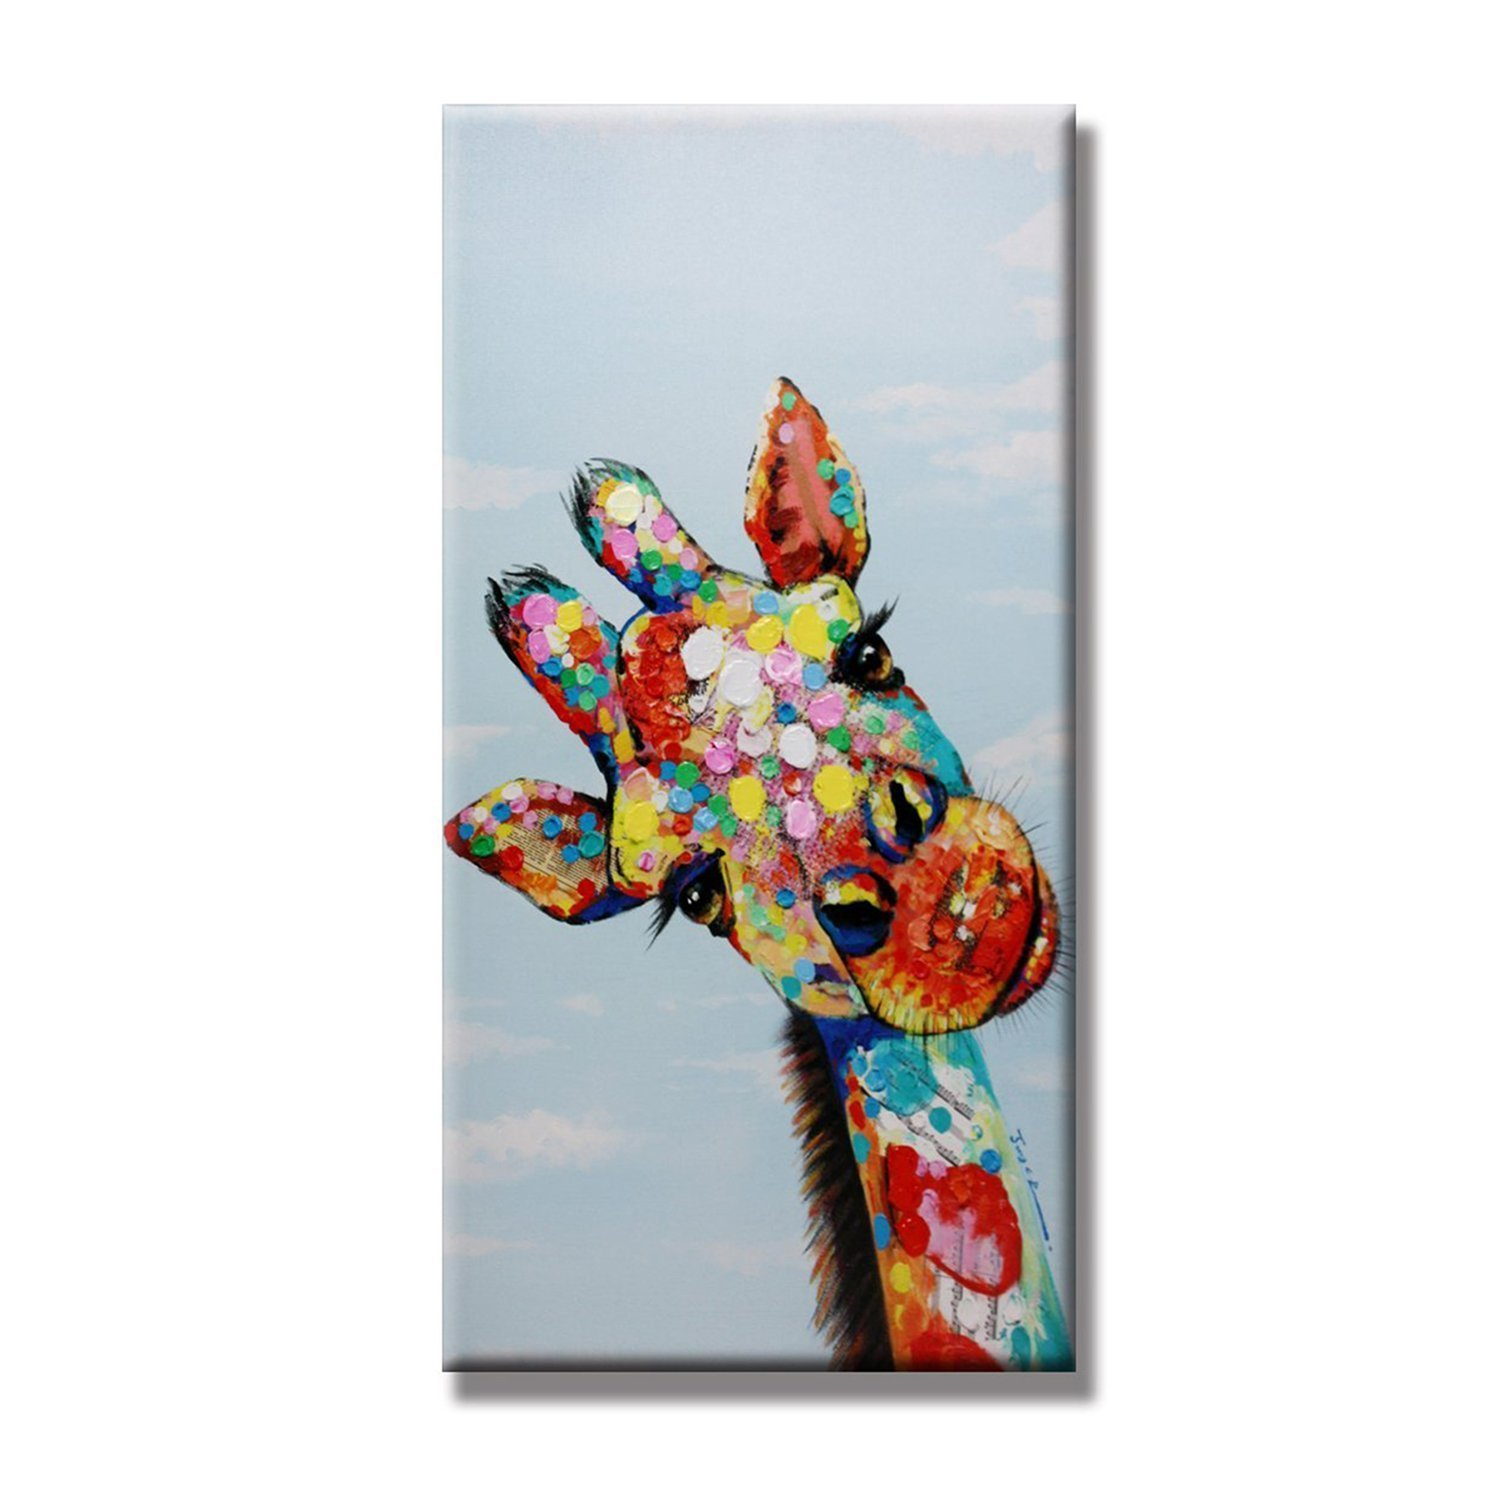 Animal Giraffe 100% Oil Painting Modern Abstract Hand Painted Unframed for Bedroom Canvas Wall Art Home Decor (No Frame,45x90cm/18x36 inch)